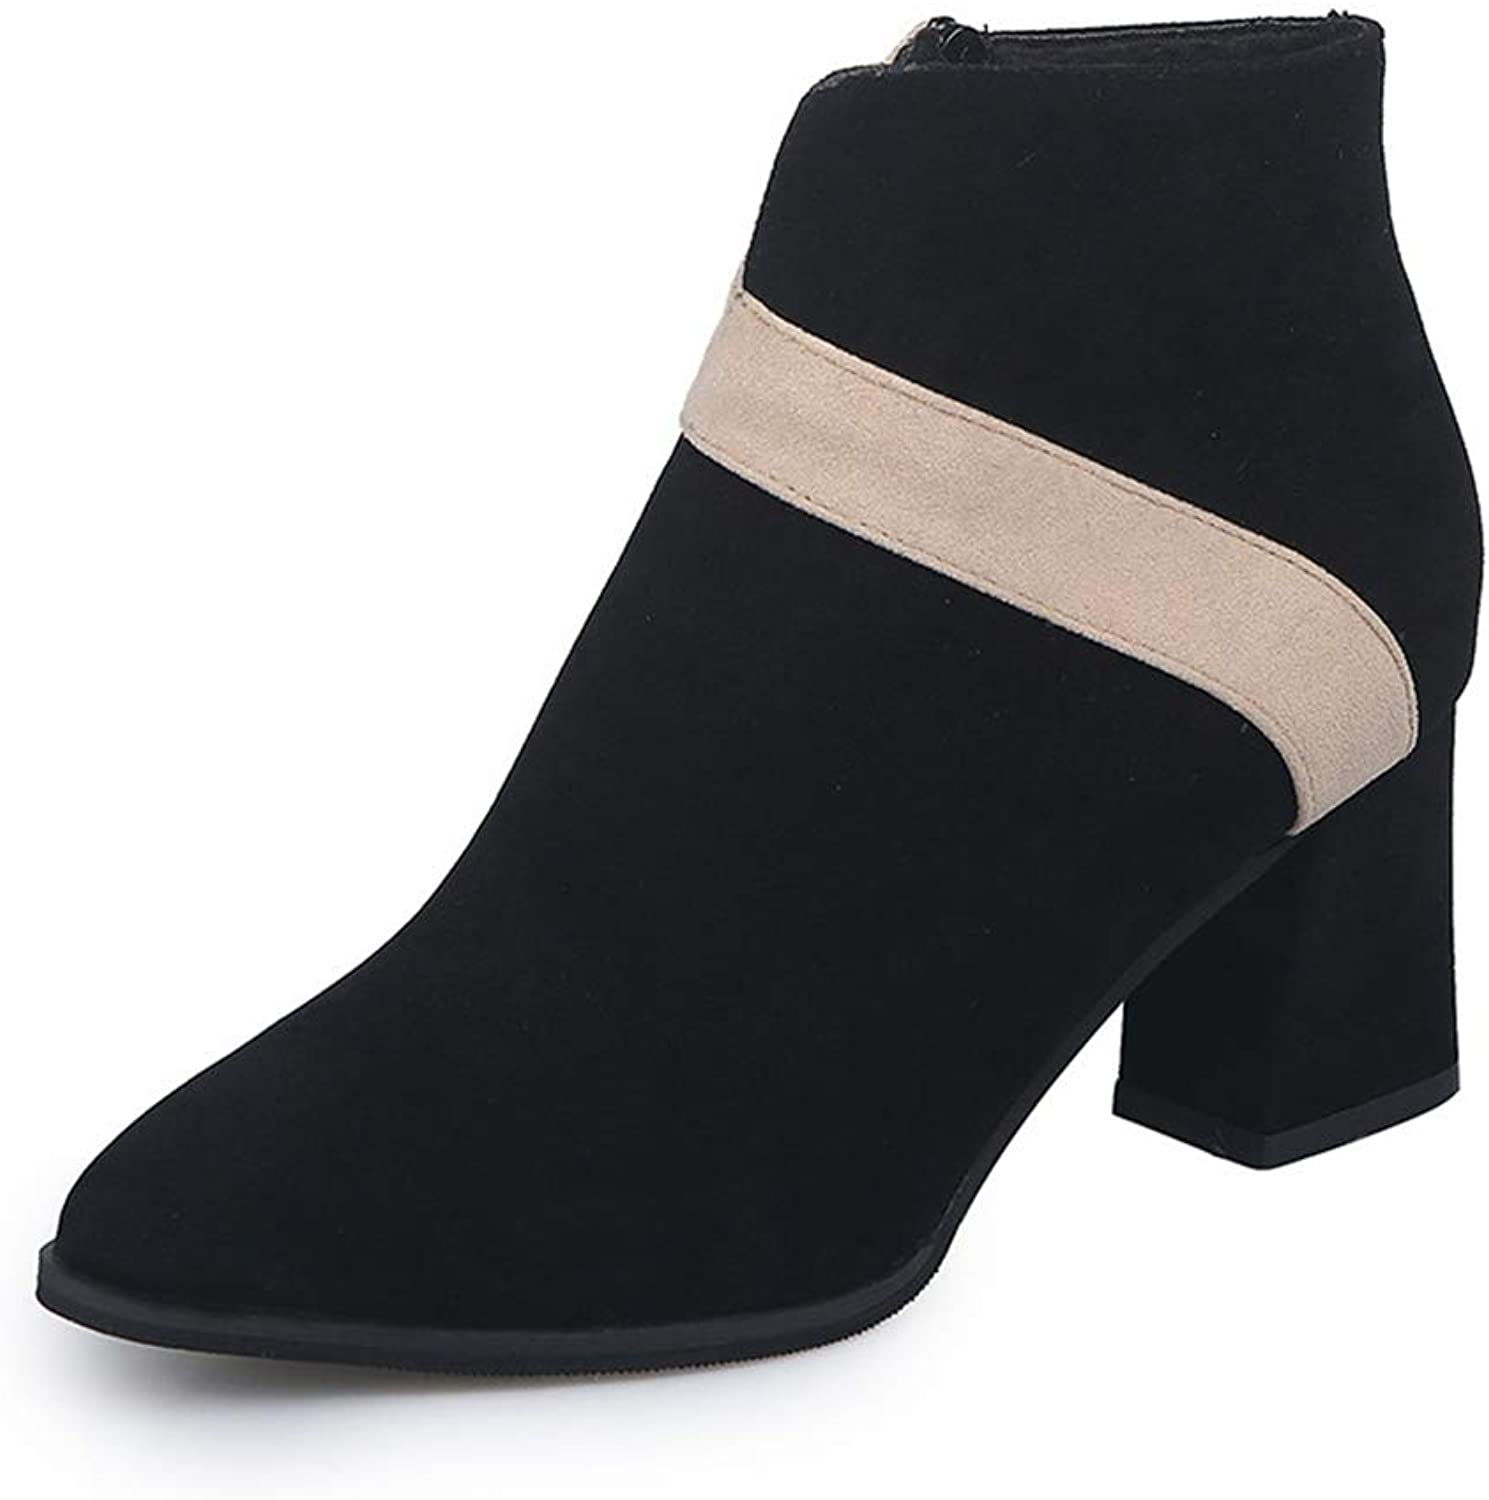 T-JULY Women's Classic Pointed Toe Comfortable Stripe Ankle Boots Ladies Fashion Brand High Heels shoes